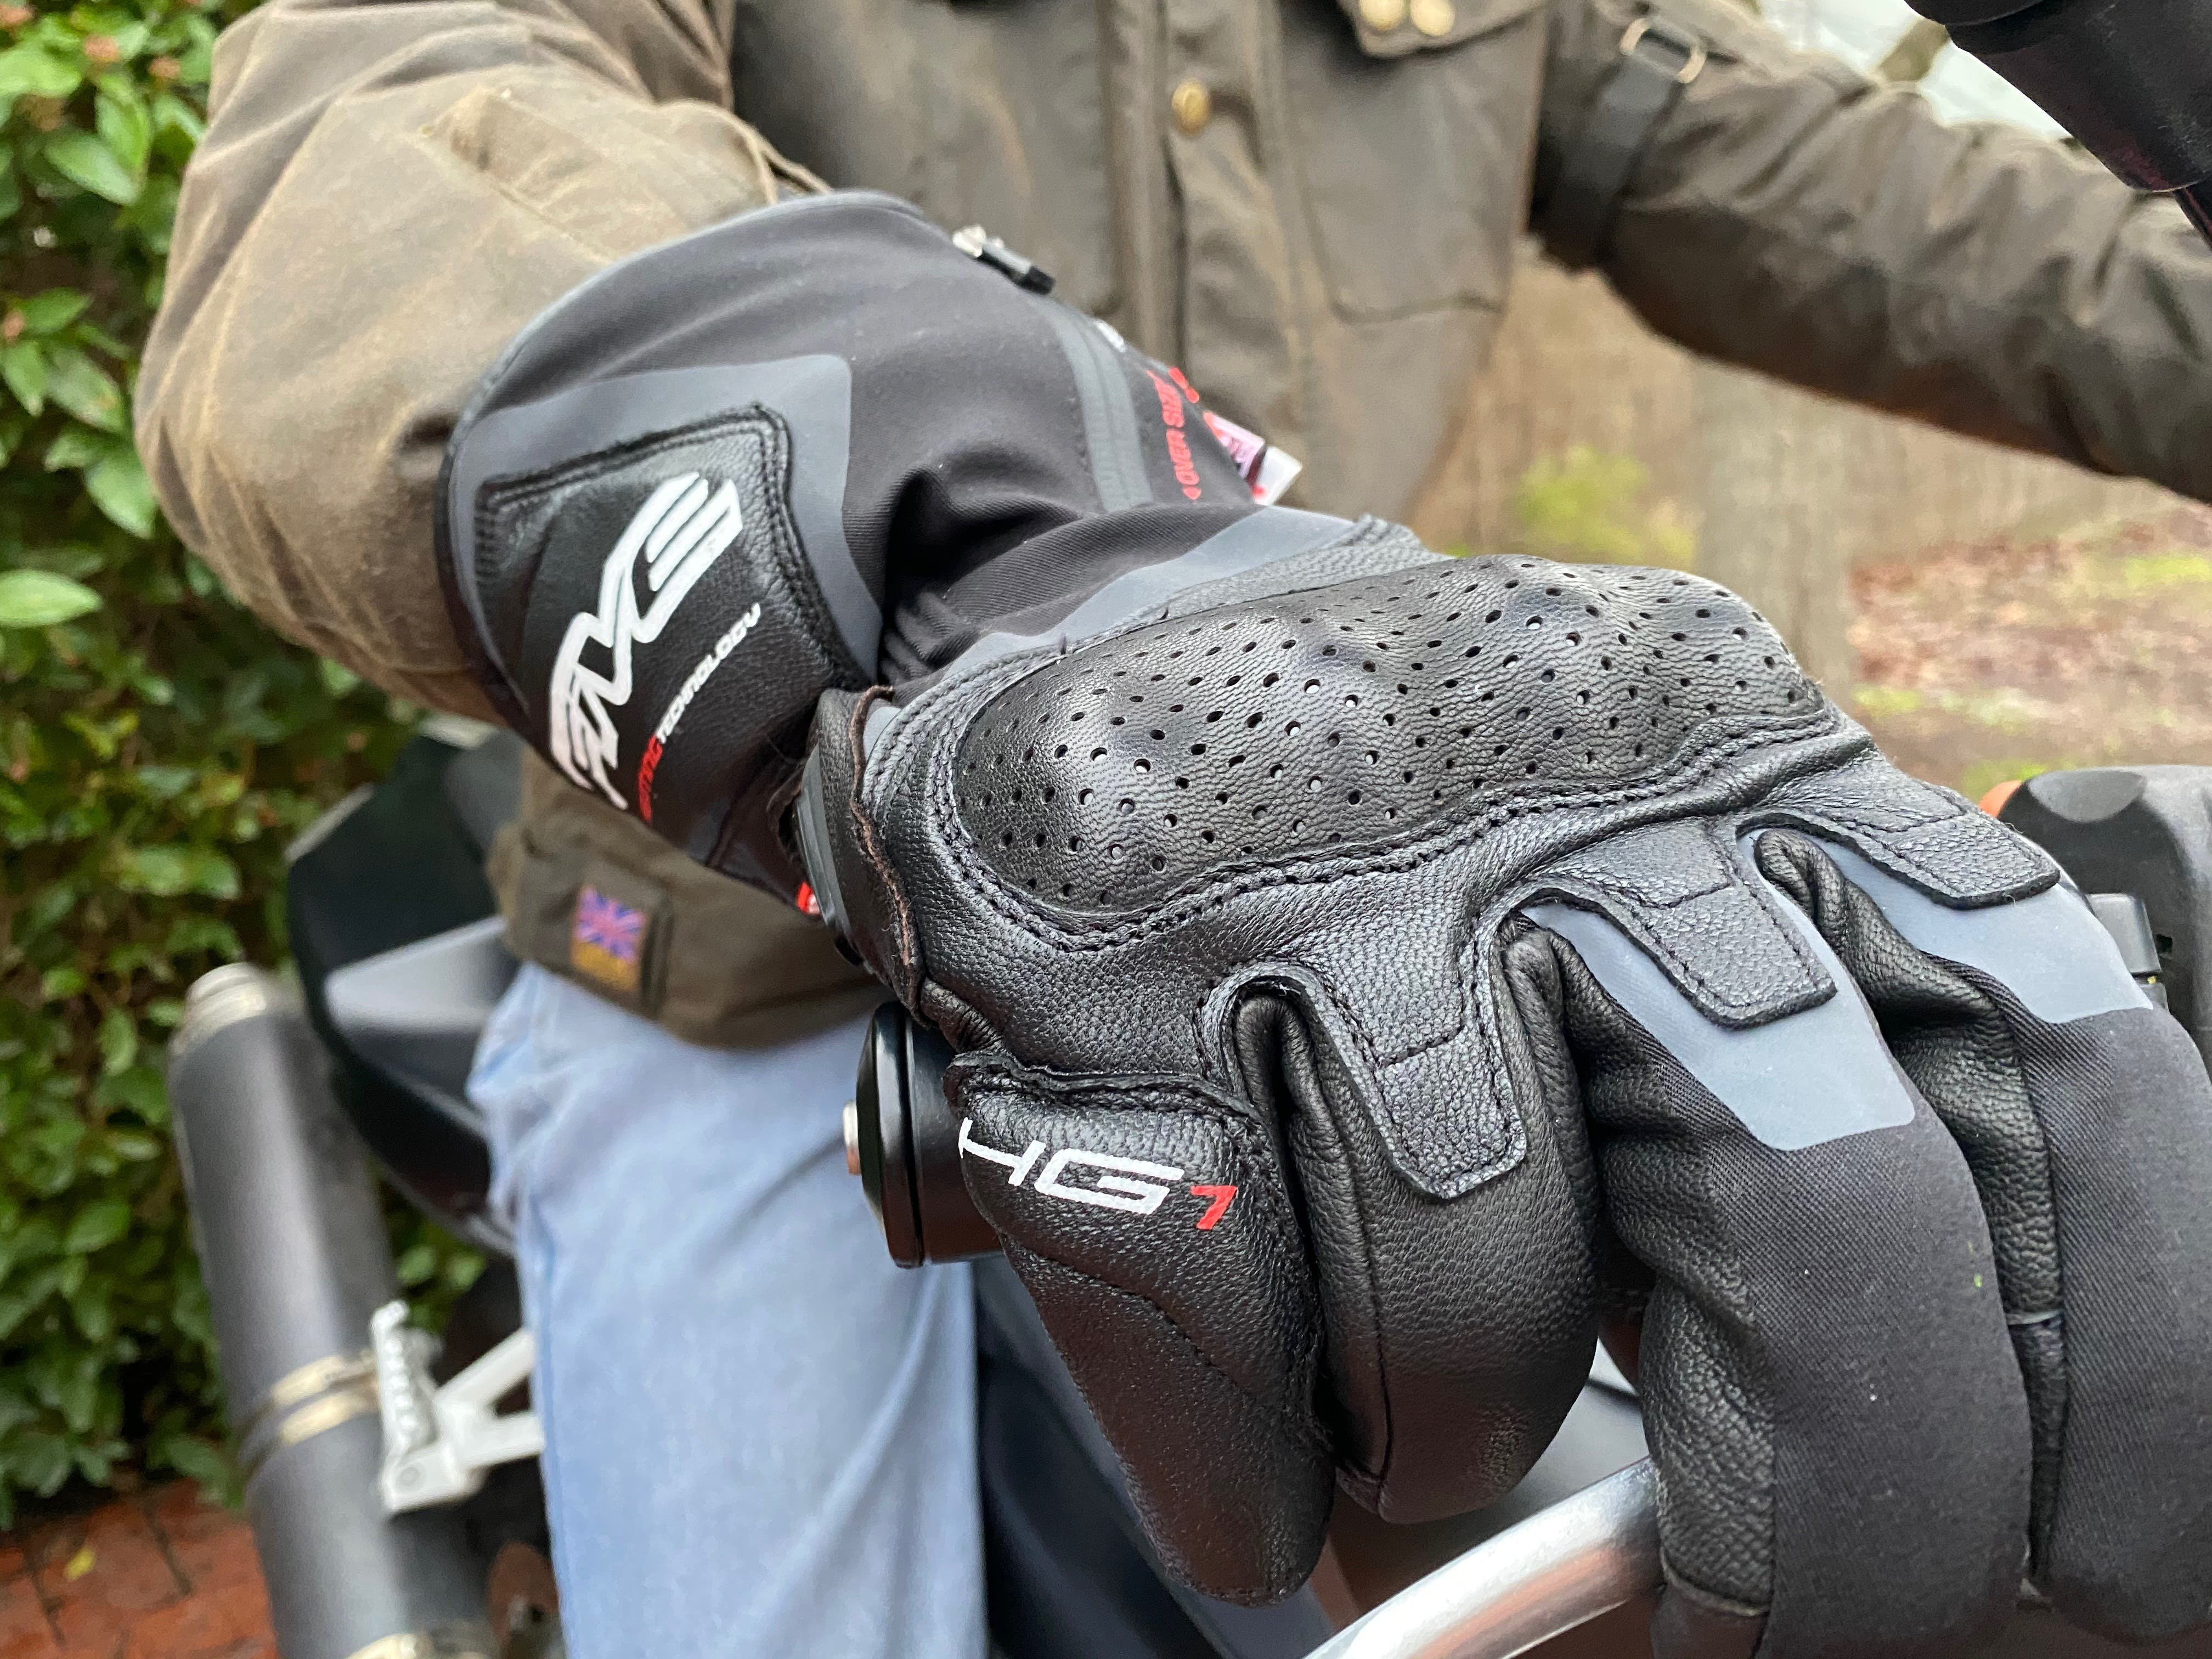 The Five HG-1 heated glove on a mans hand on a motorcycle handlebar